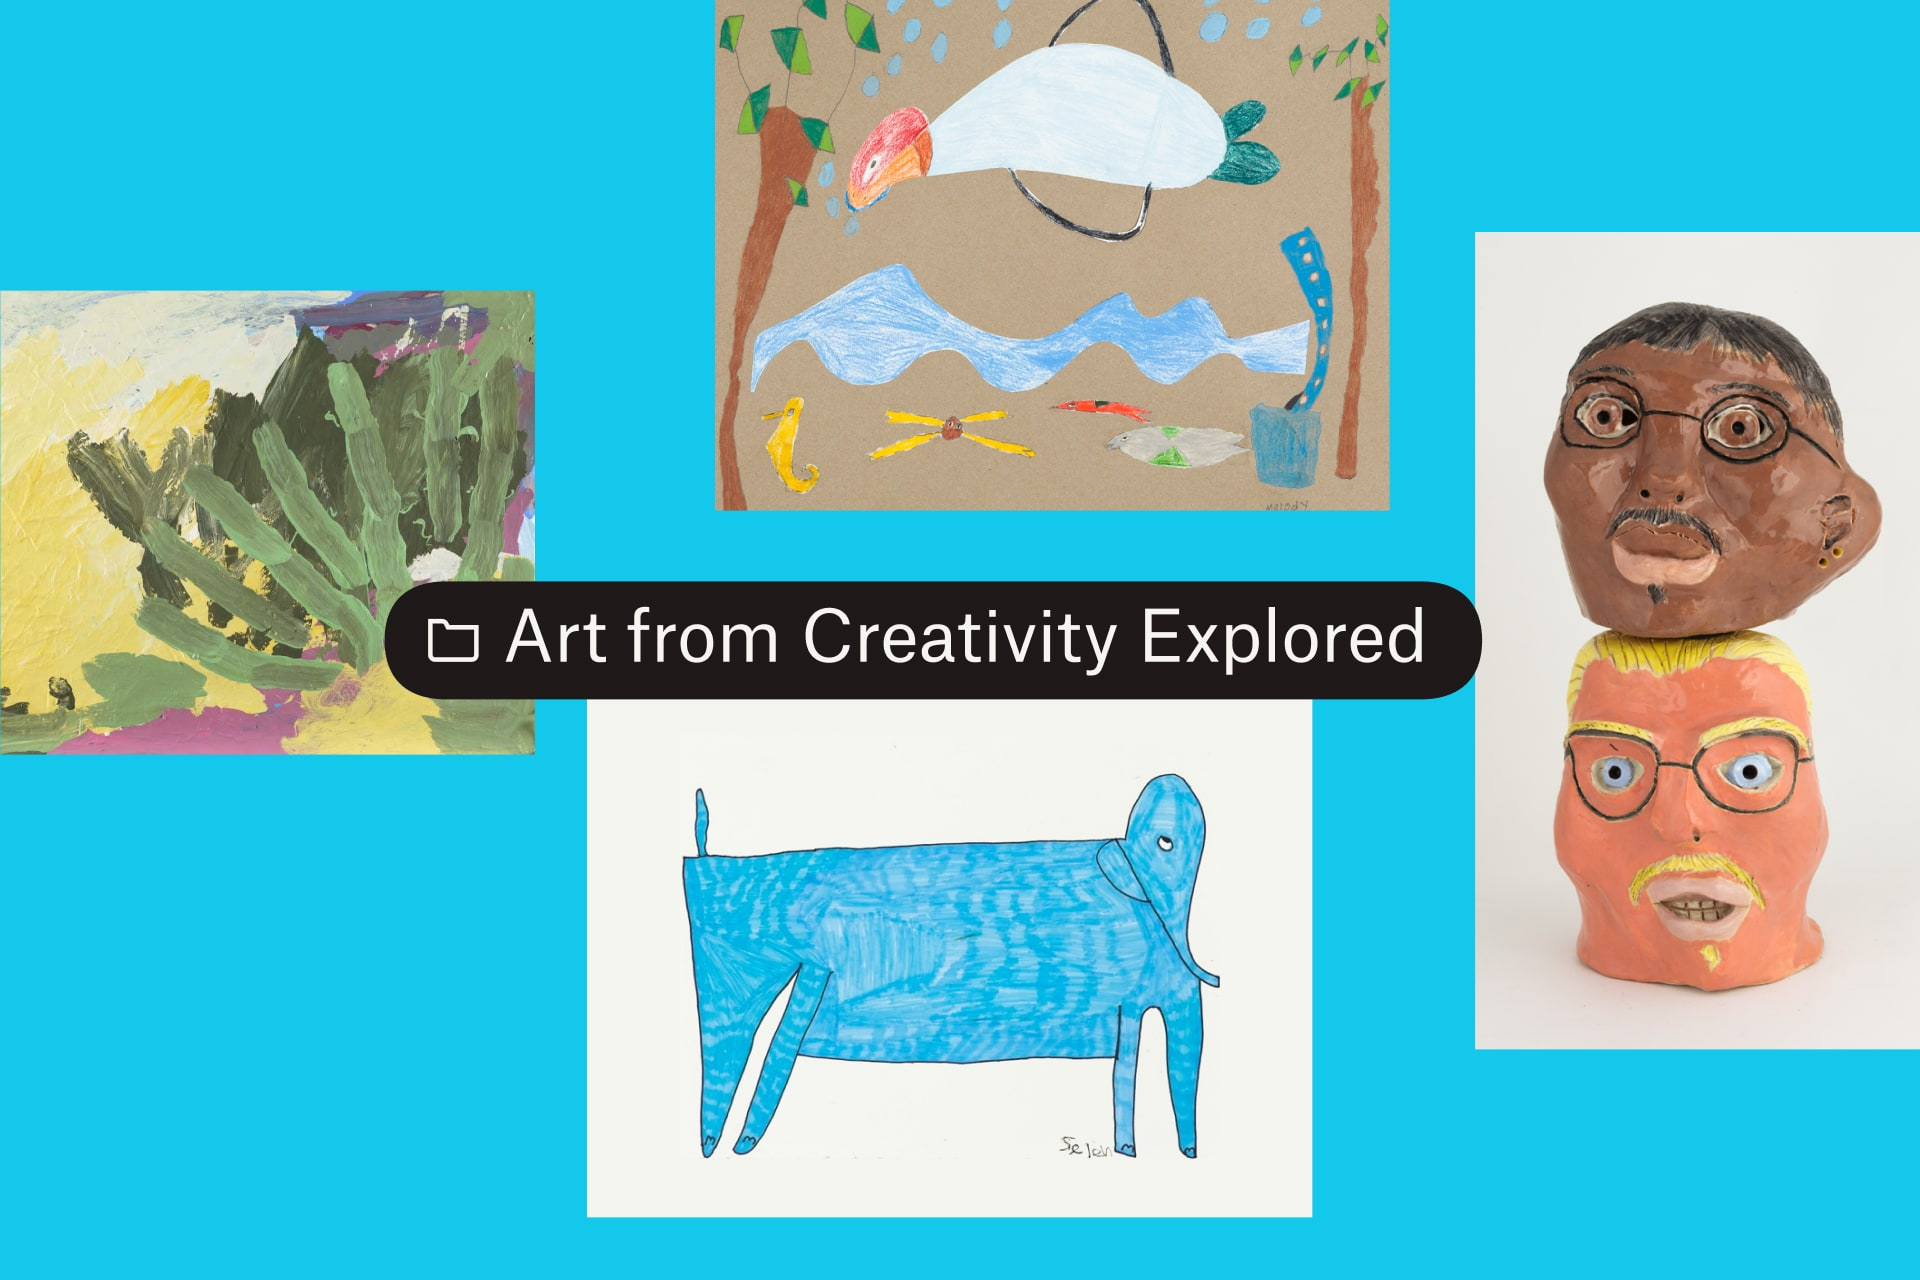 A folder titled Art from Creativity Explored with four images of art.